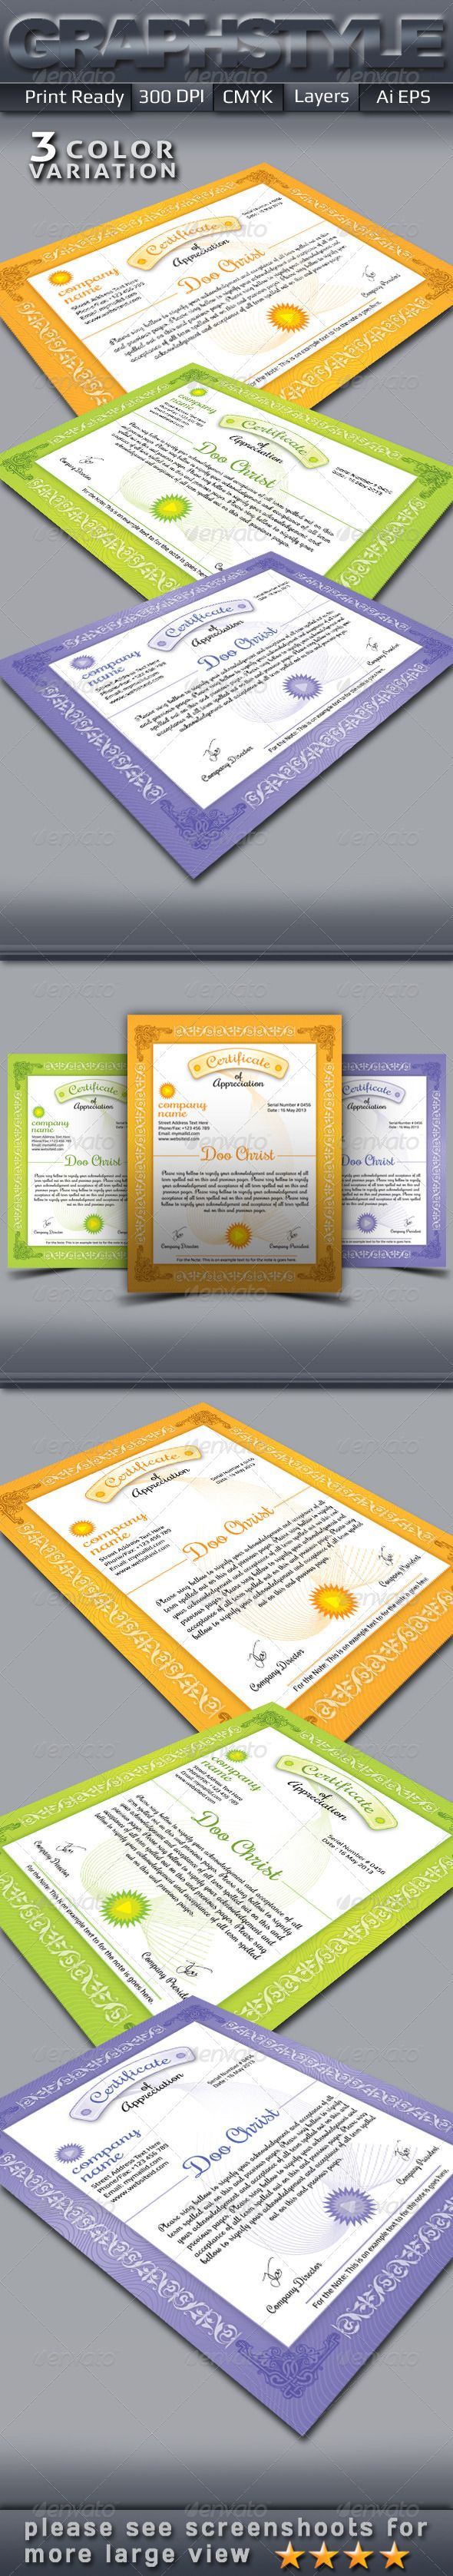 "Certificate_Templates  #GraphicRiver        Certificate_Templates 8.75×11.25"" print dimension with Bleed + Trim Mark, Well Layered Organised (EPS), 300DPI, CMYK , Print ready, 3 Color Variations & Fully Editable, Text/fonts/colors editable. Whats you get in the main files 1. 3 Print ready layered CMYK EPS Flyers. 2. 1 Help files (.txt). 3. Free fonts html links. If you like, please rate this… Do You Need Professional Custom Design? I am available for freelance work. Contact me if you are…"